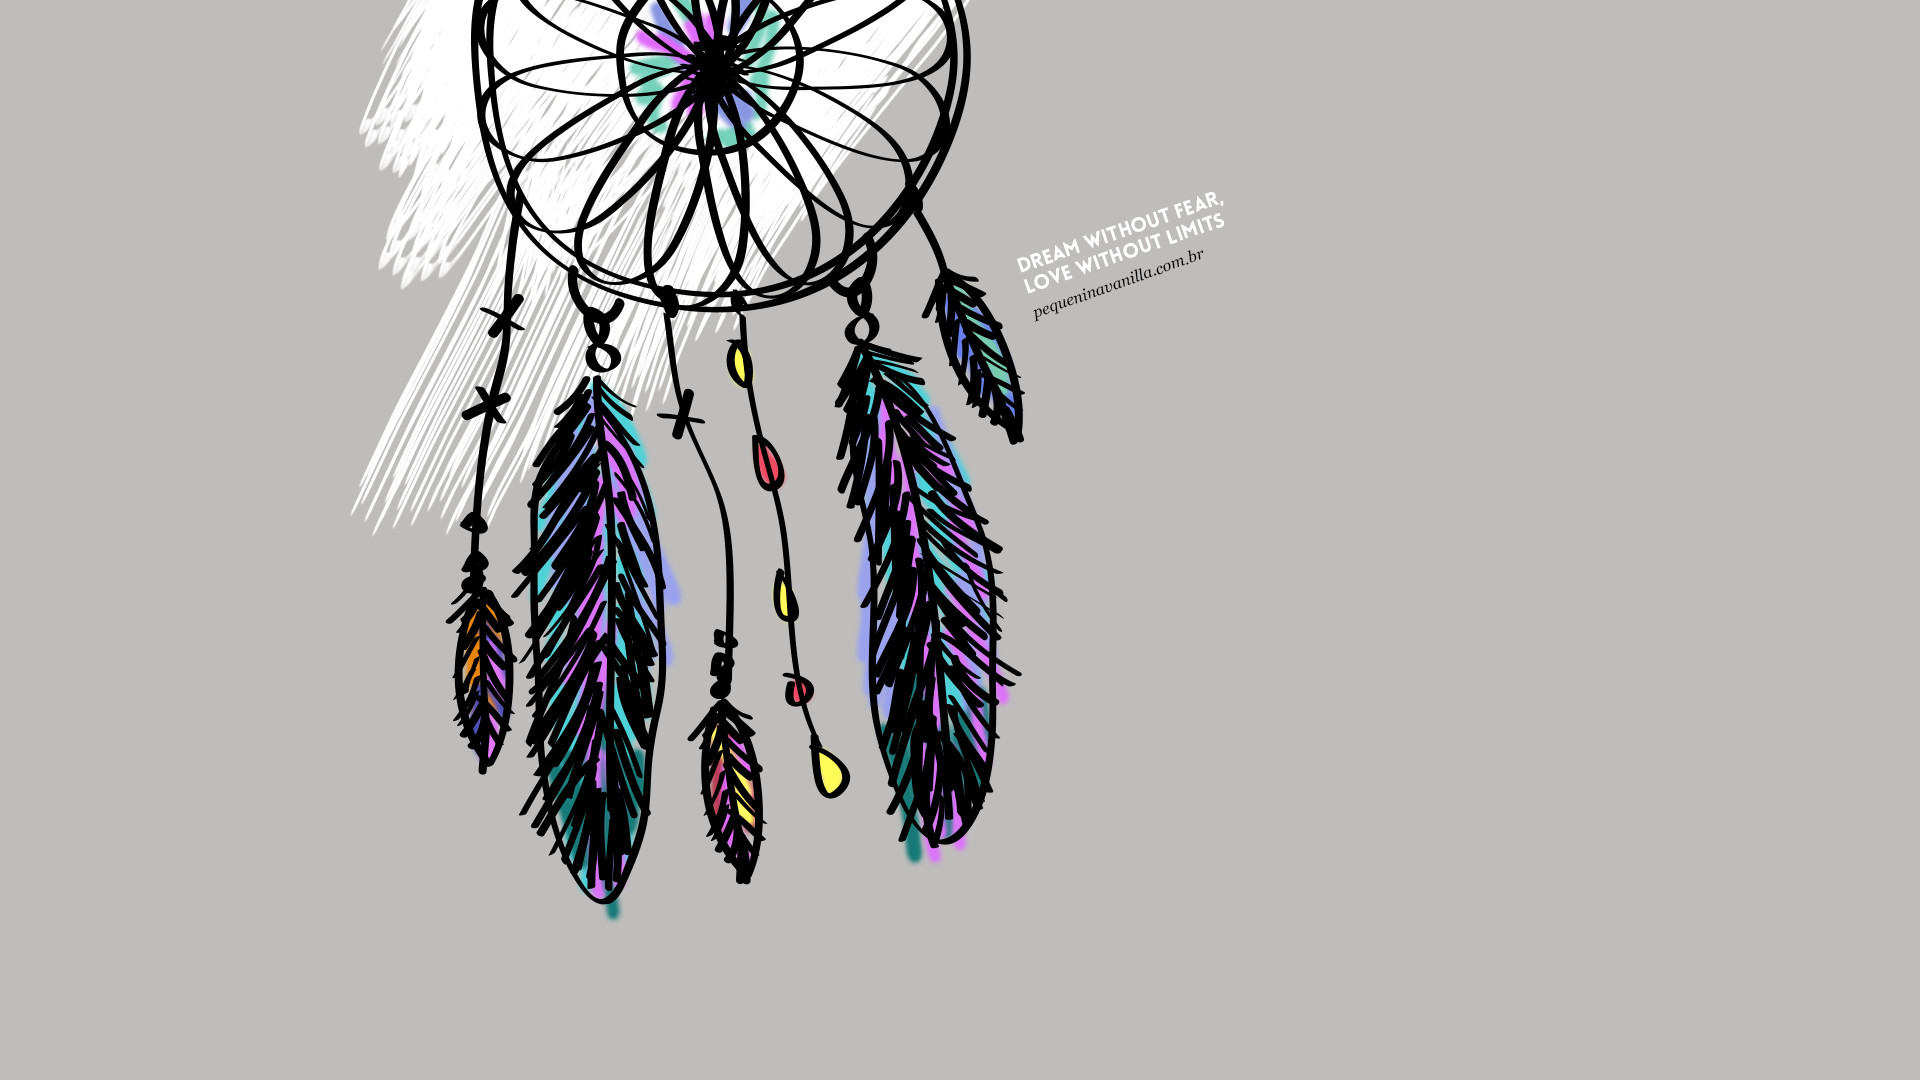 Cute Dreamcatcher Wallpaper Dreamcatcher Wallpaper Hd 70 Images